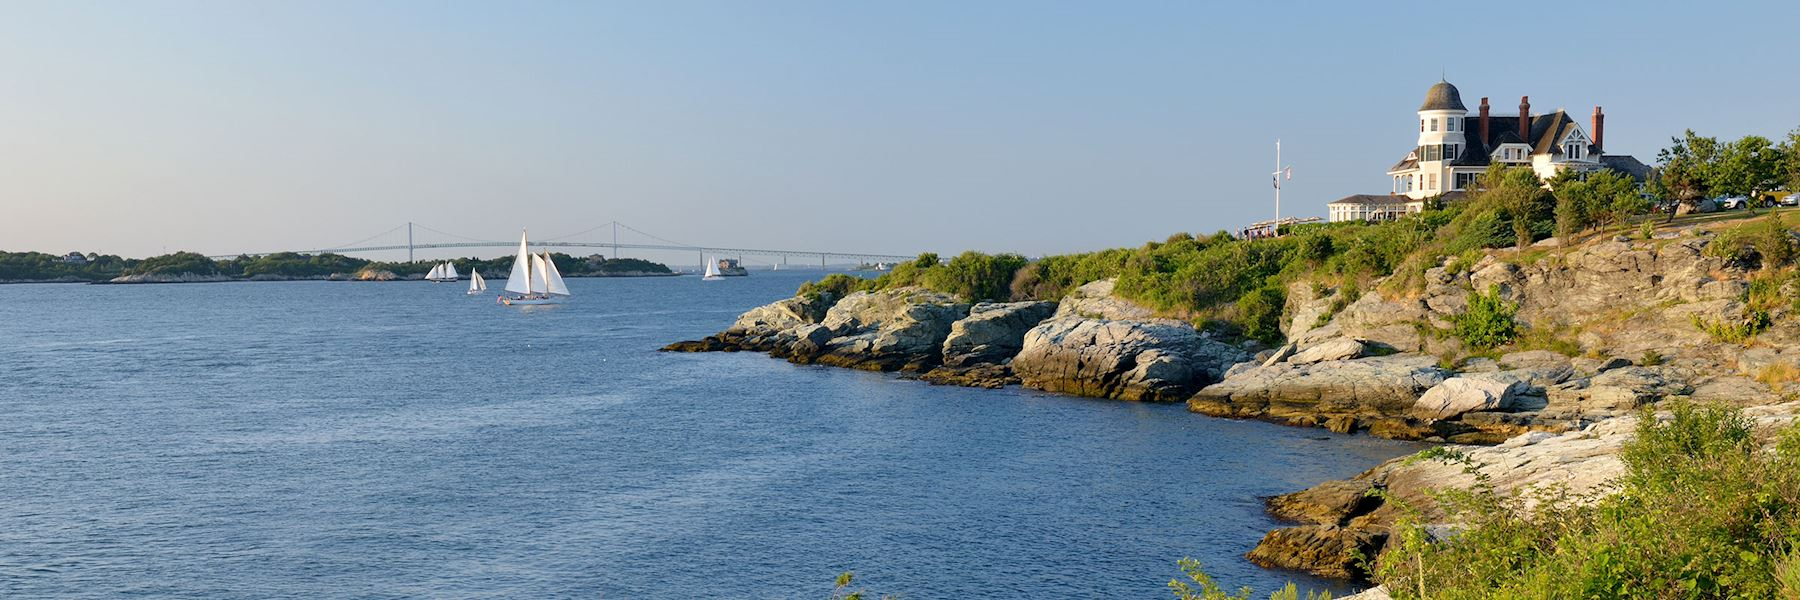 Places To Go And Visit In Rhode Island